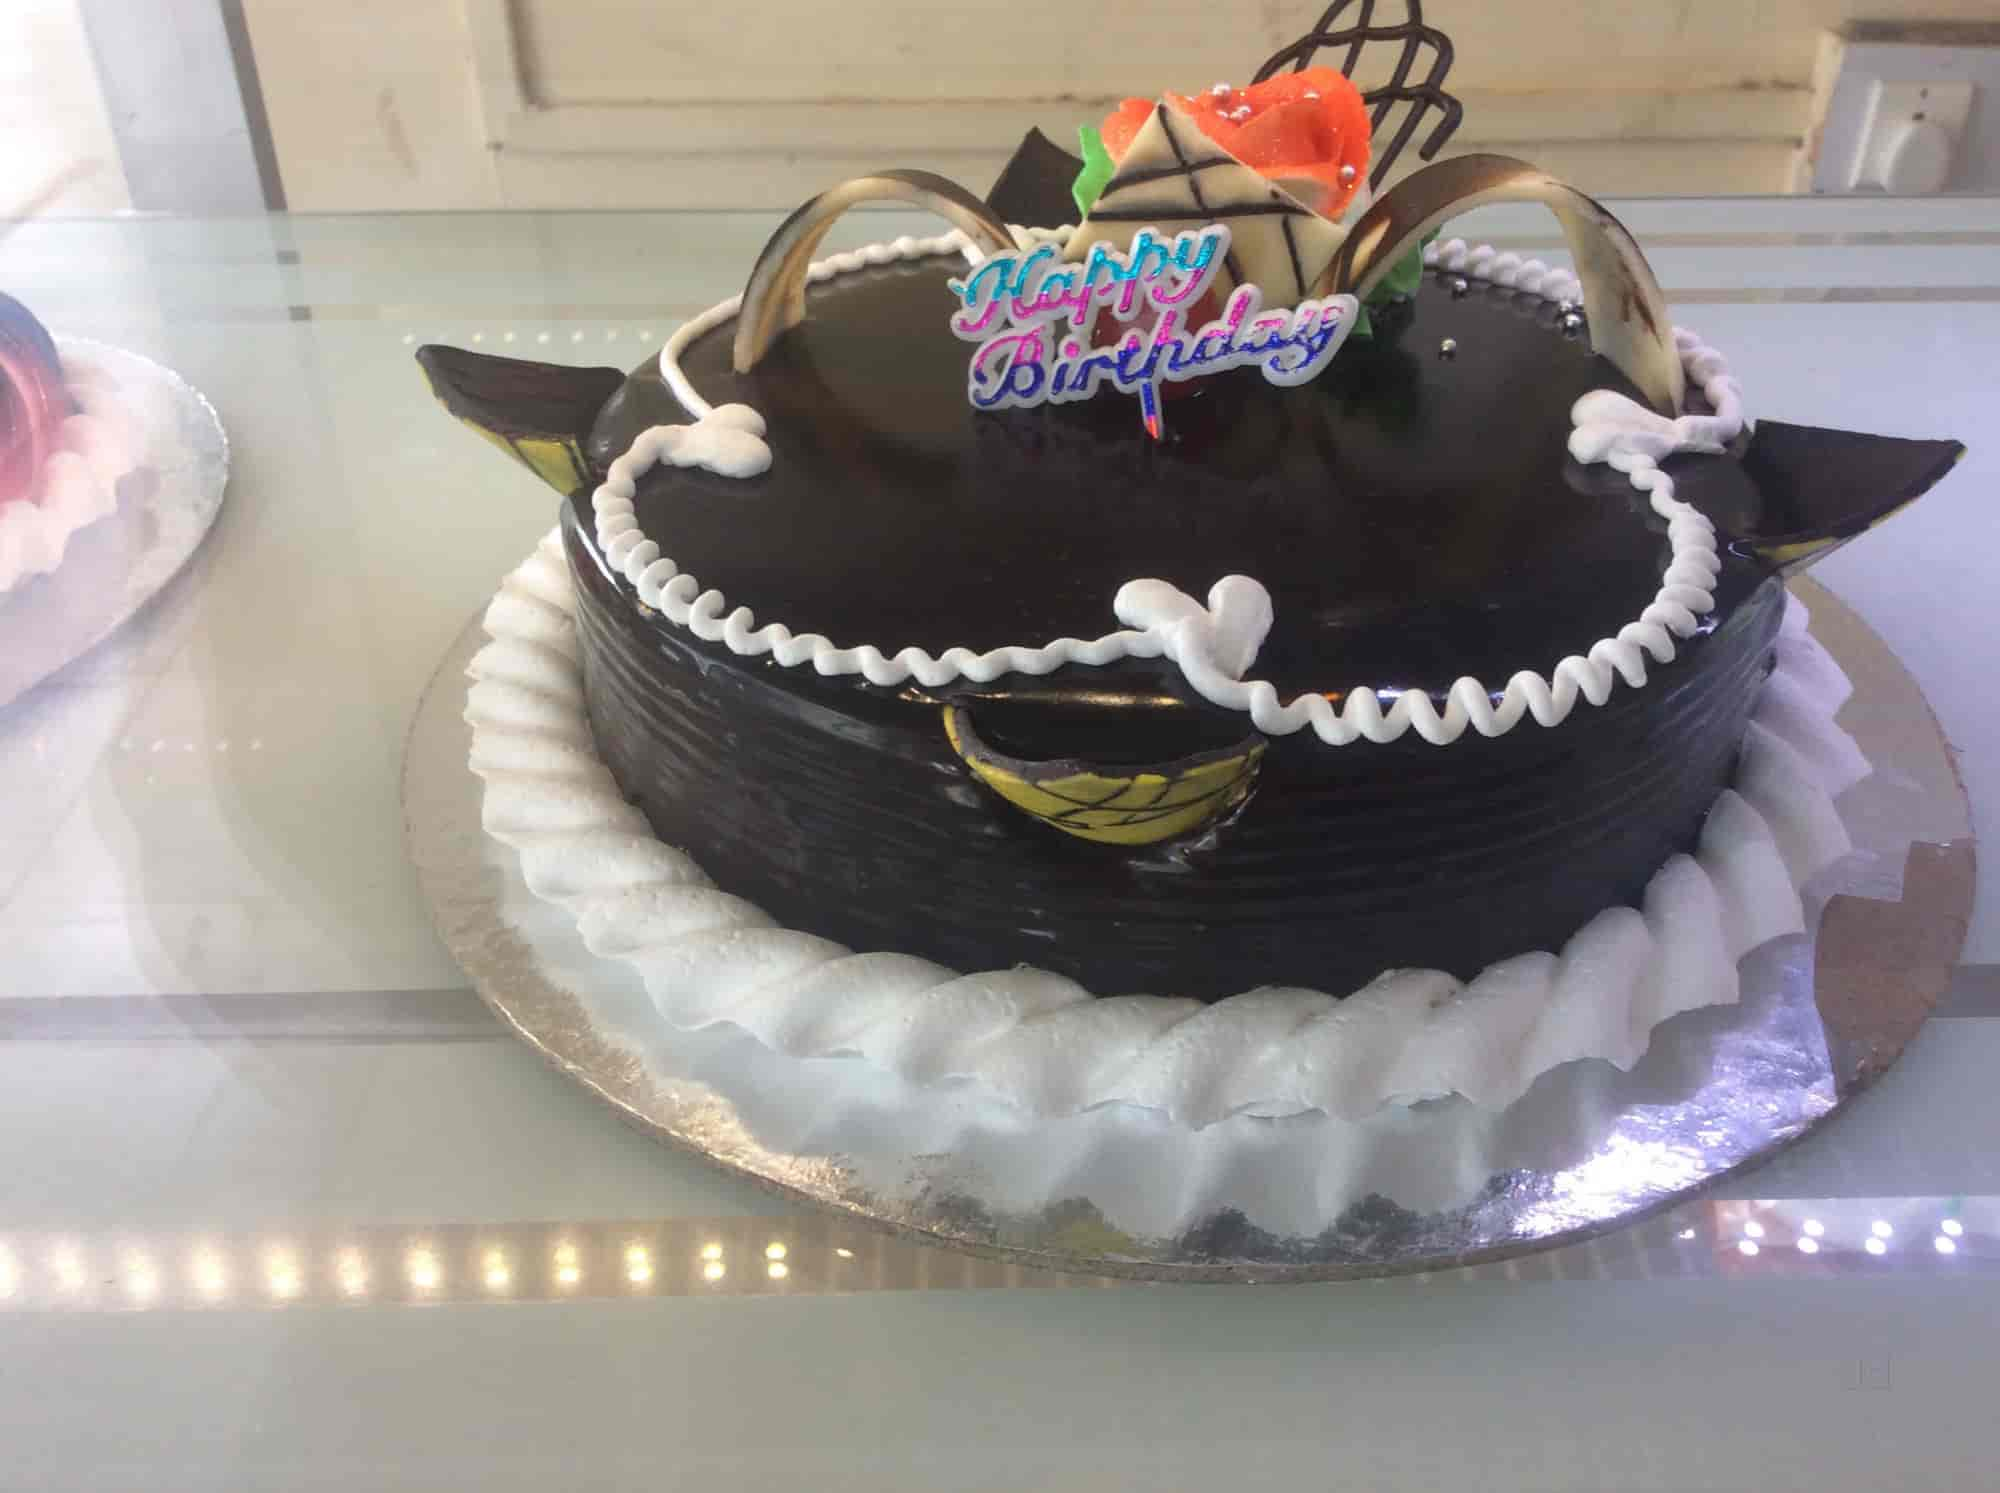 Happy Cakes Photos Bijapur HO BijapurKarnataka Pictures Images